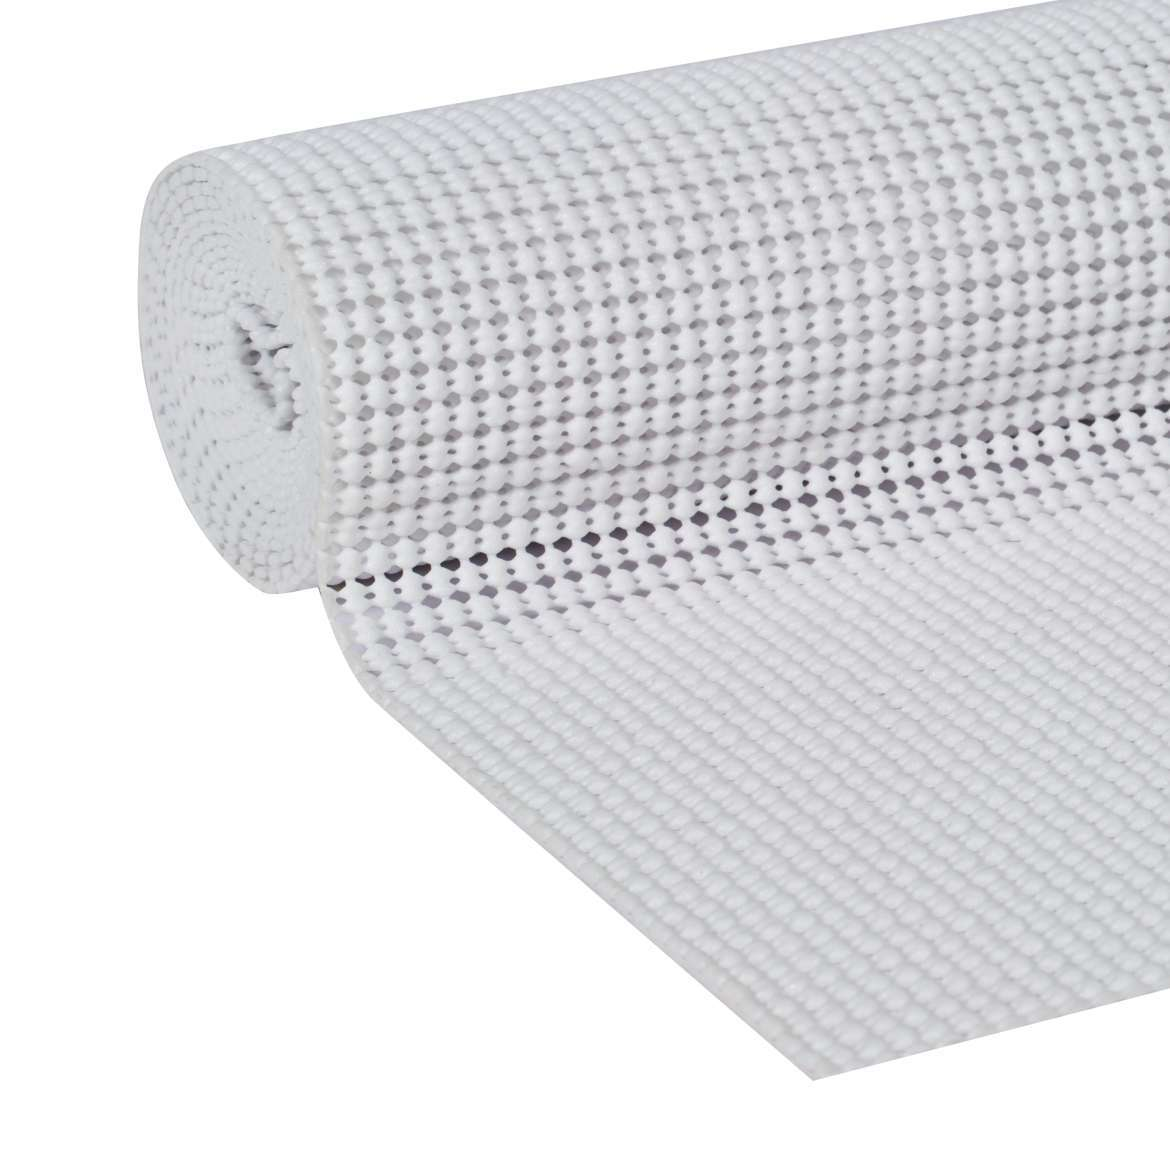 Duck Select Grip Easy Liner with Clorox 20 In. x 6 Ft. Shelf Liner, White